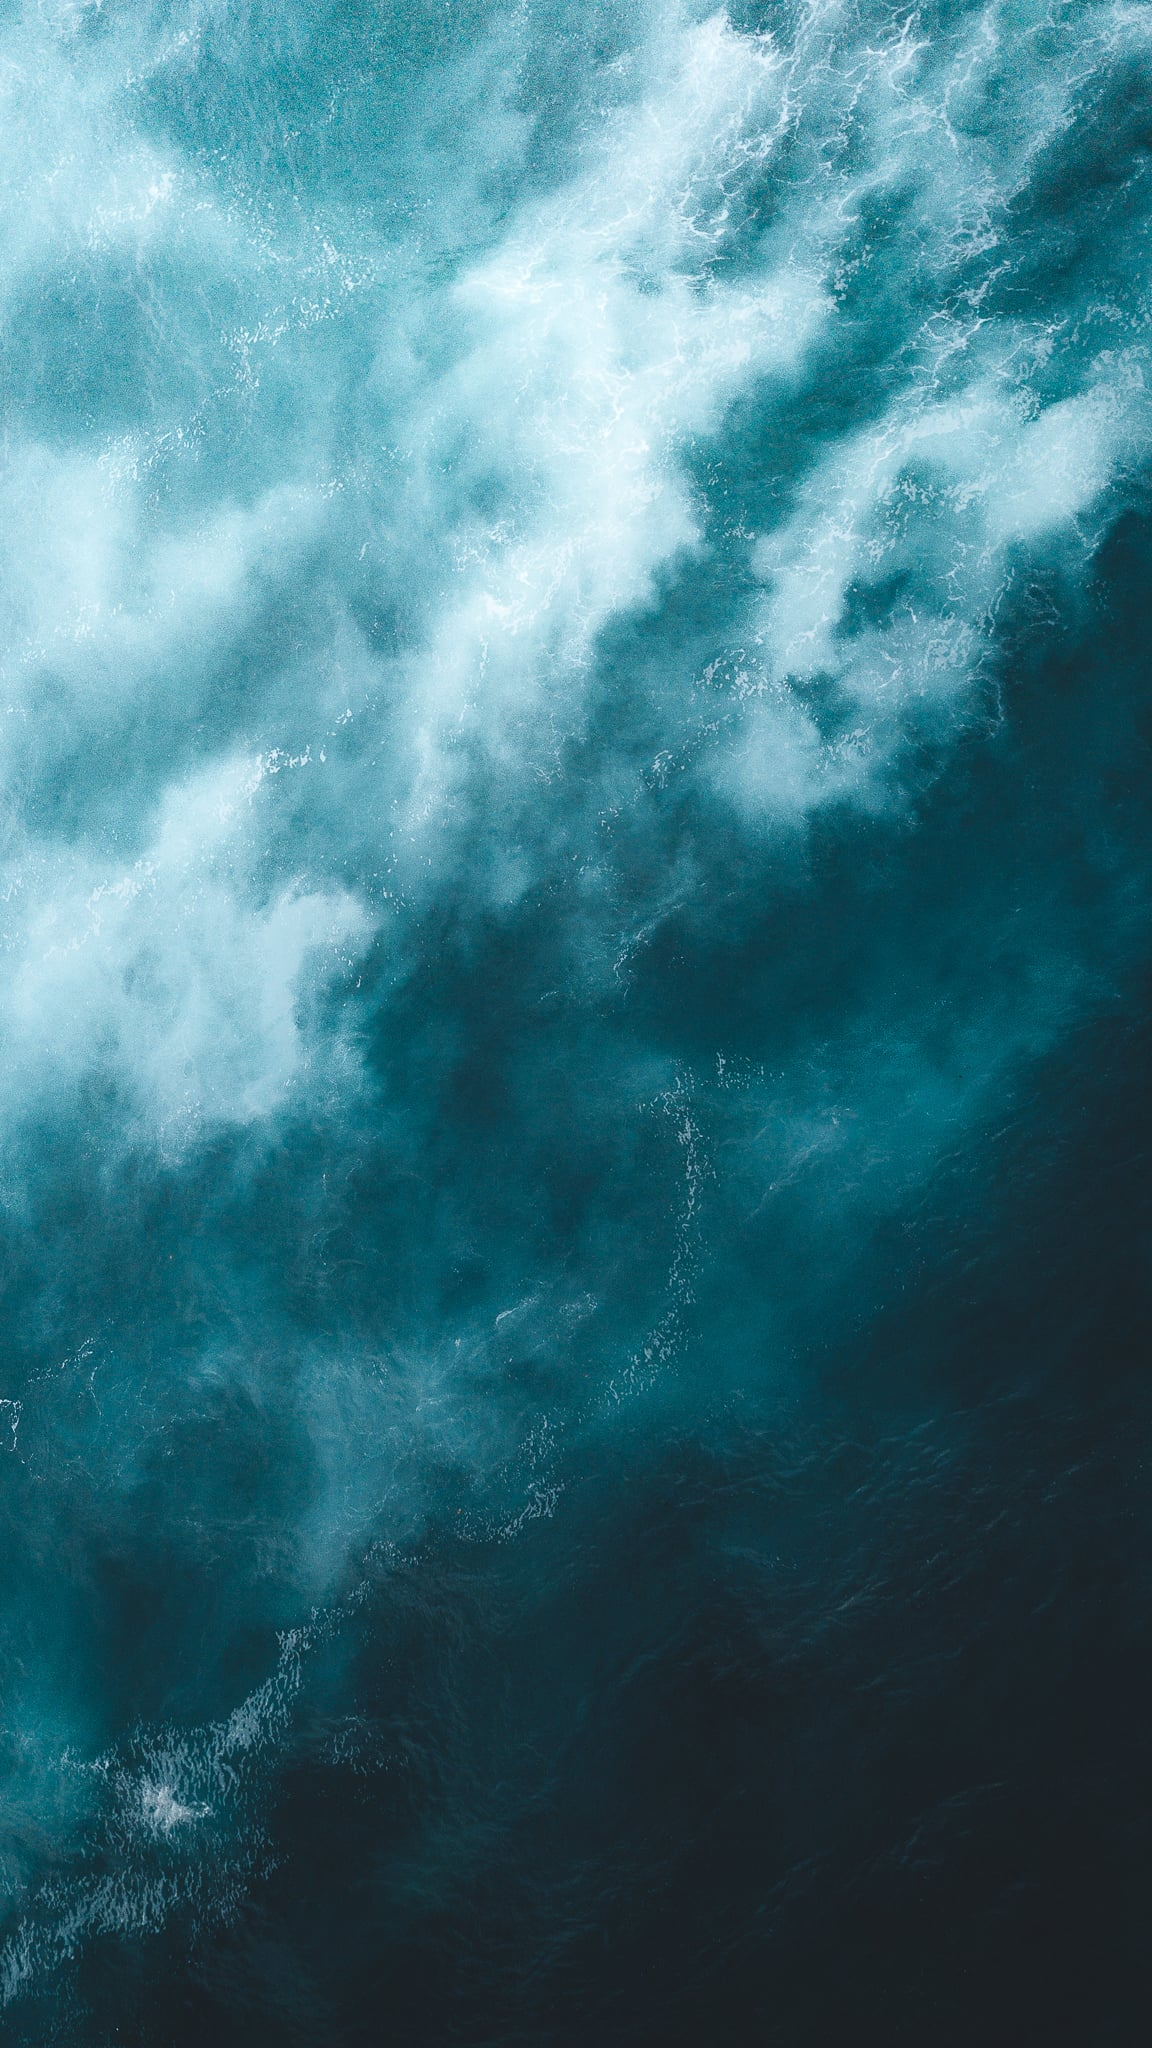 Aerial view of air bubbles trapped underwater forming abstract textures with top left part being bright and bottom right dark